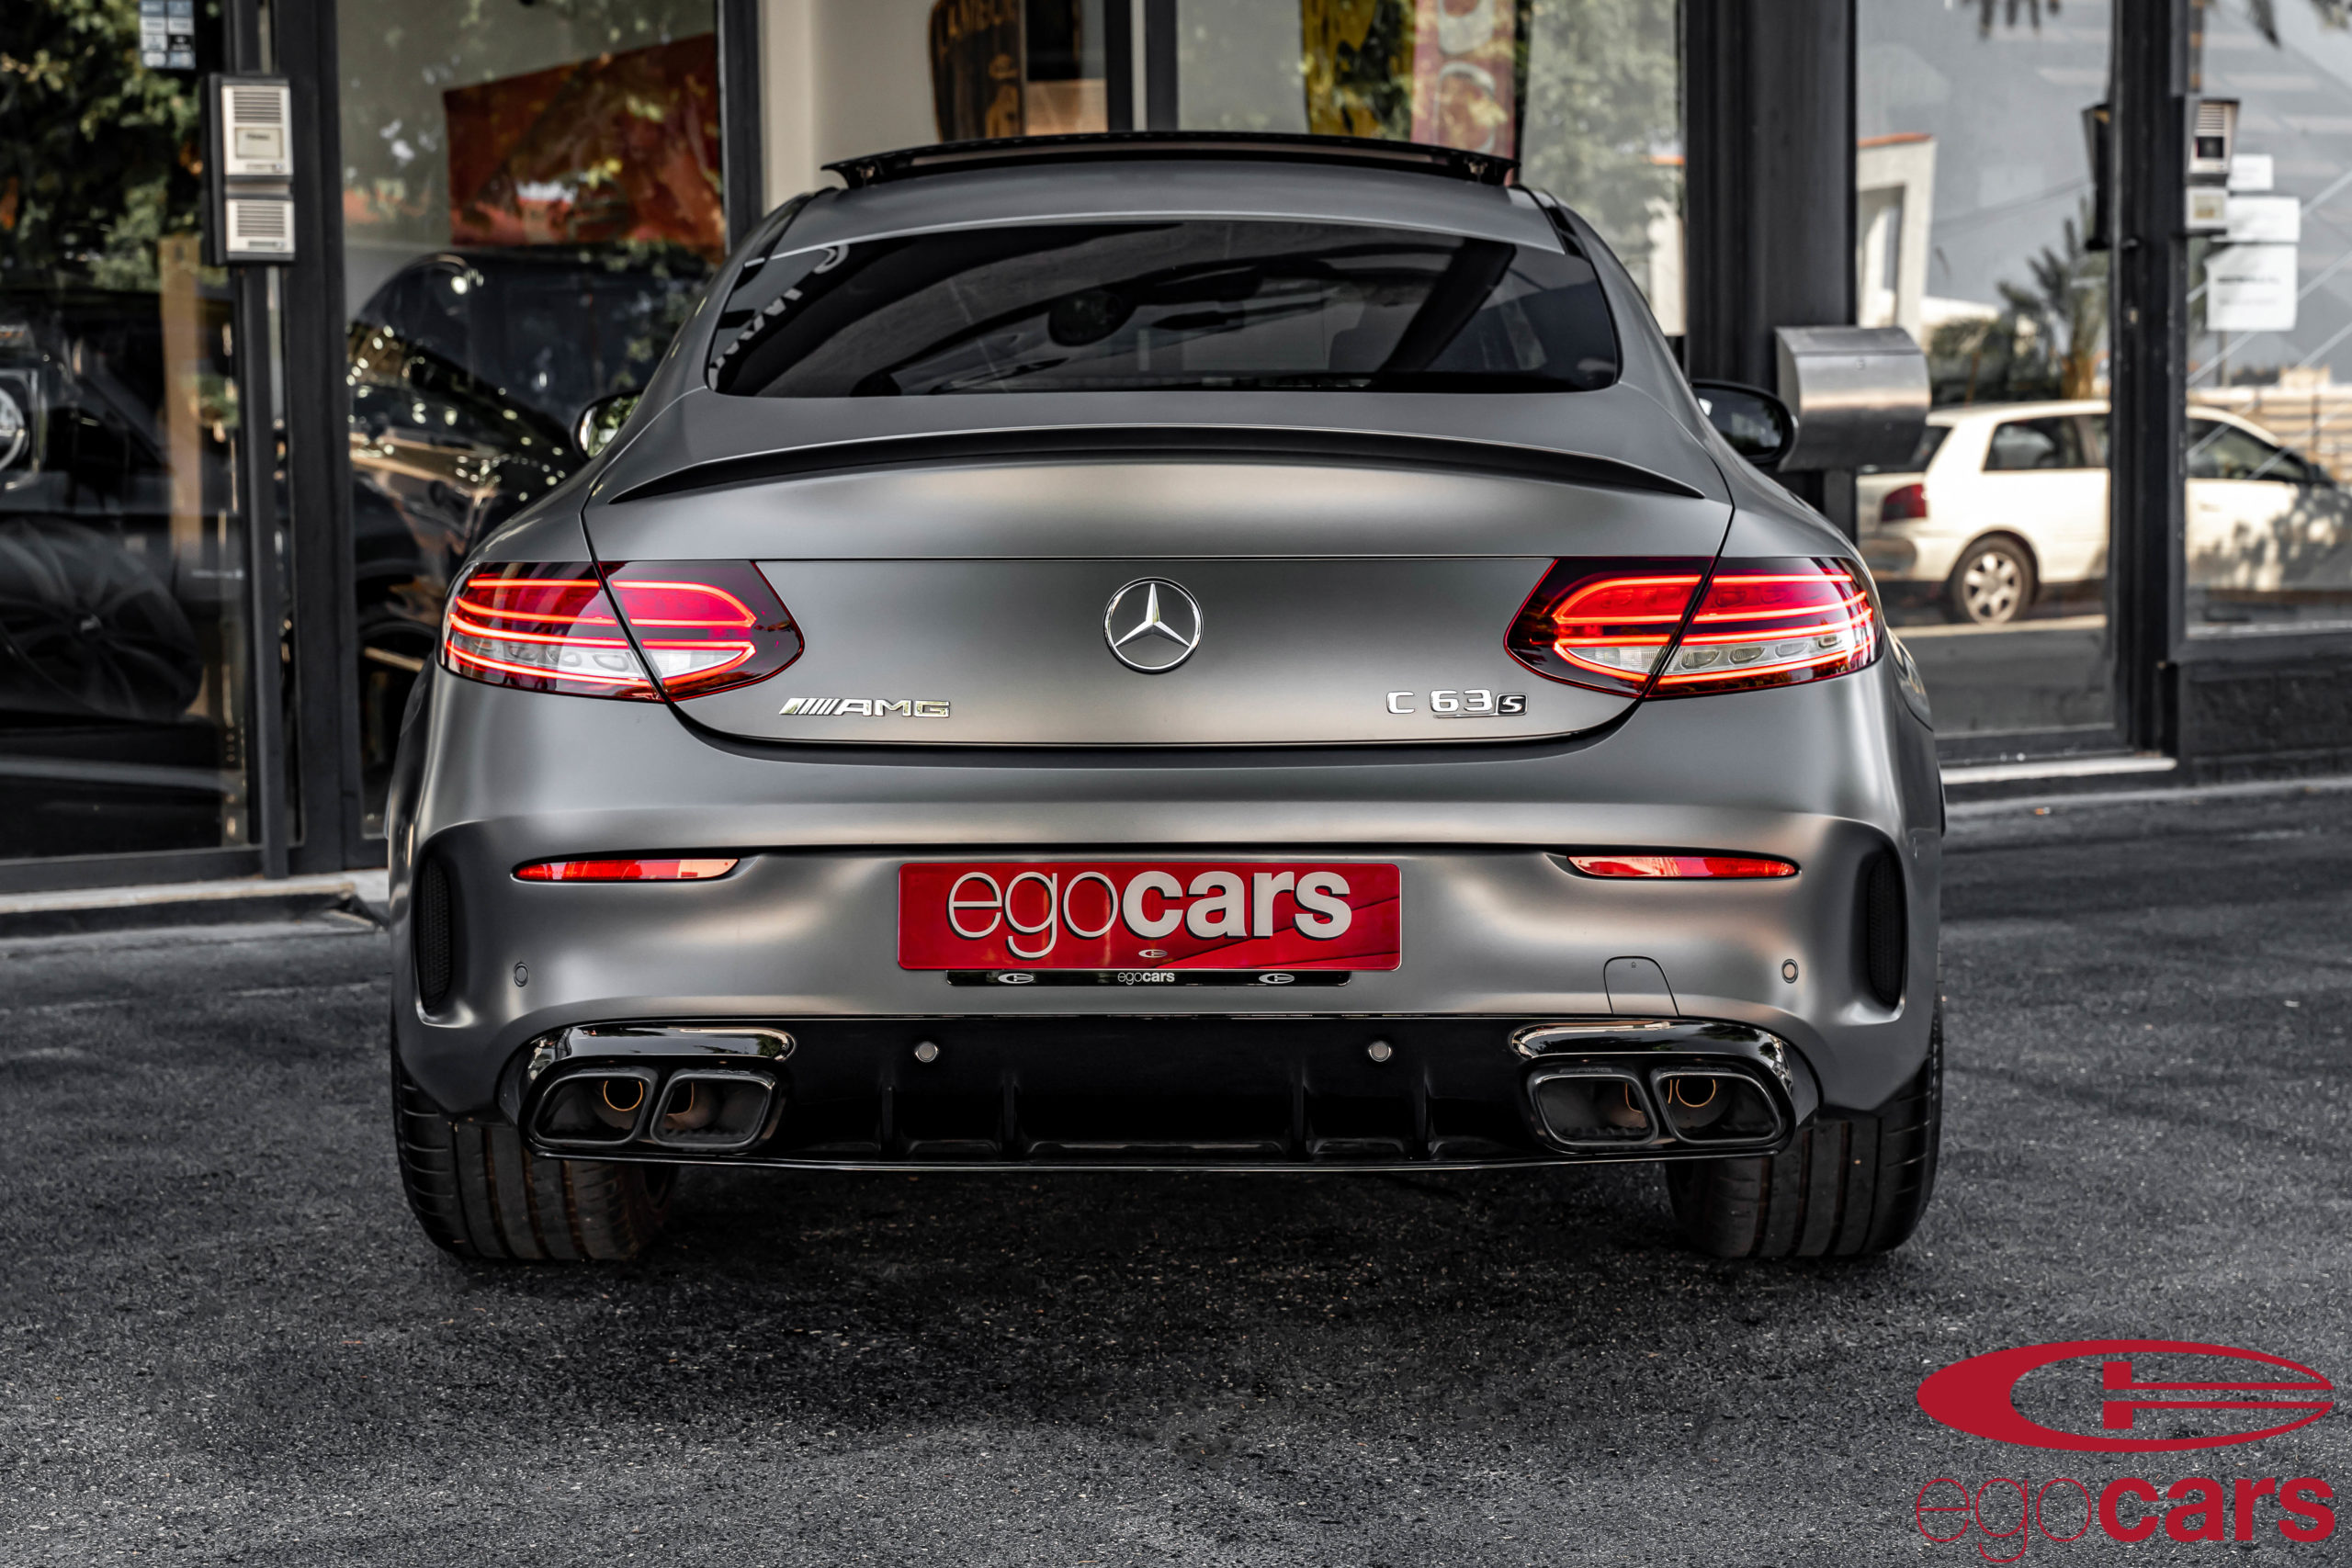 MERCEDES C63S COUPE AMG GRIS MATE EGOCARS_11